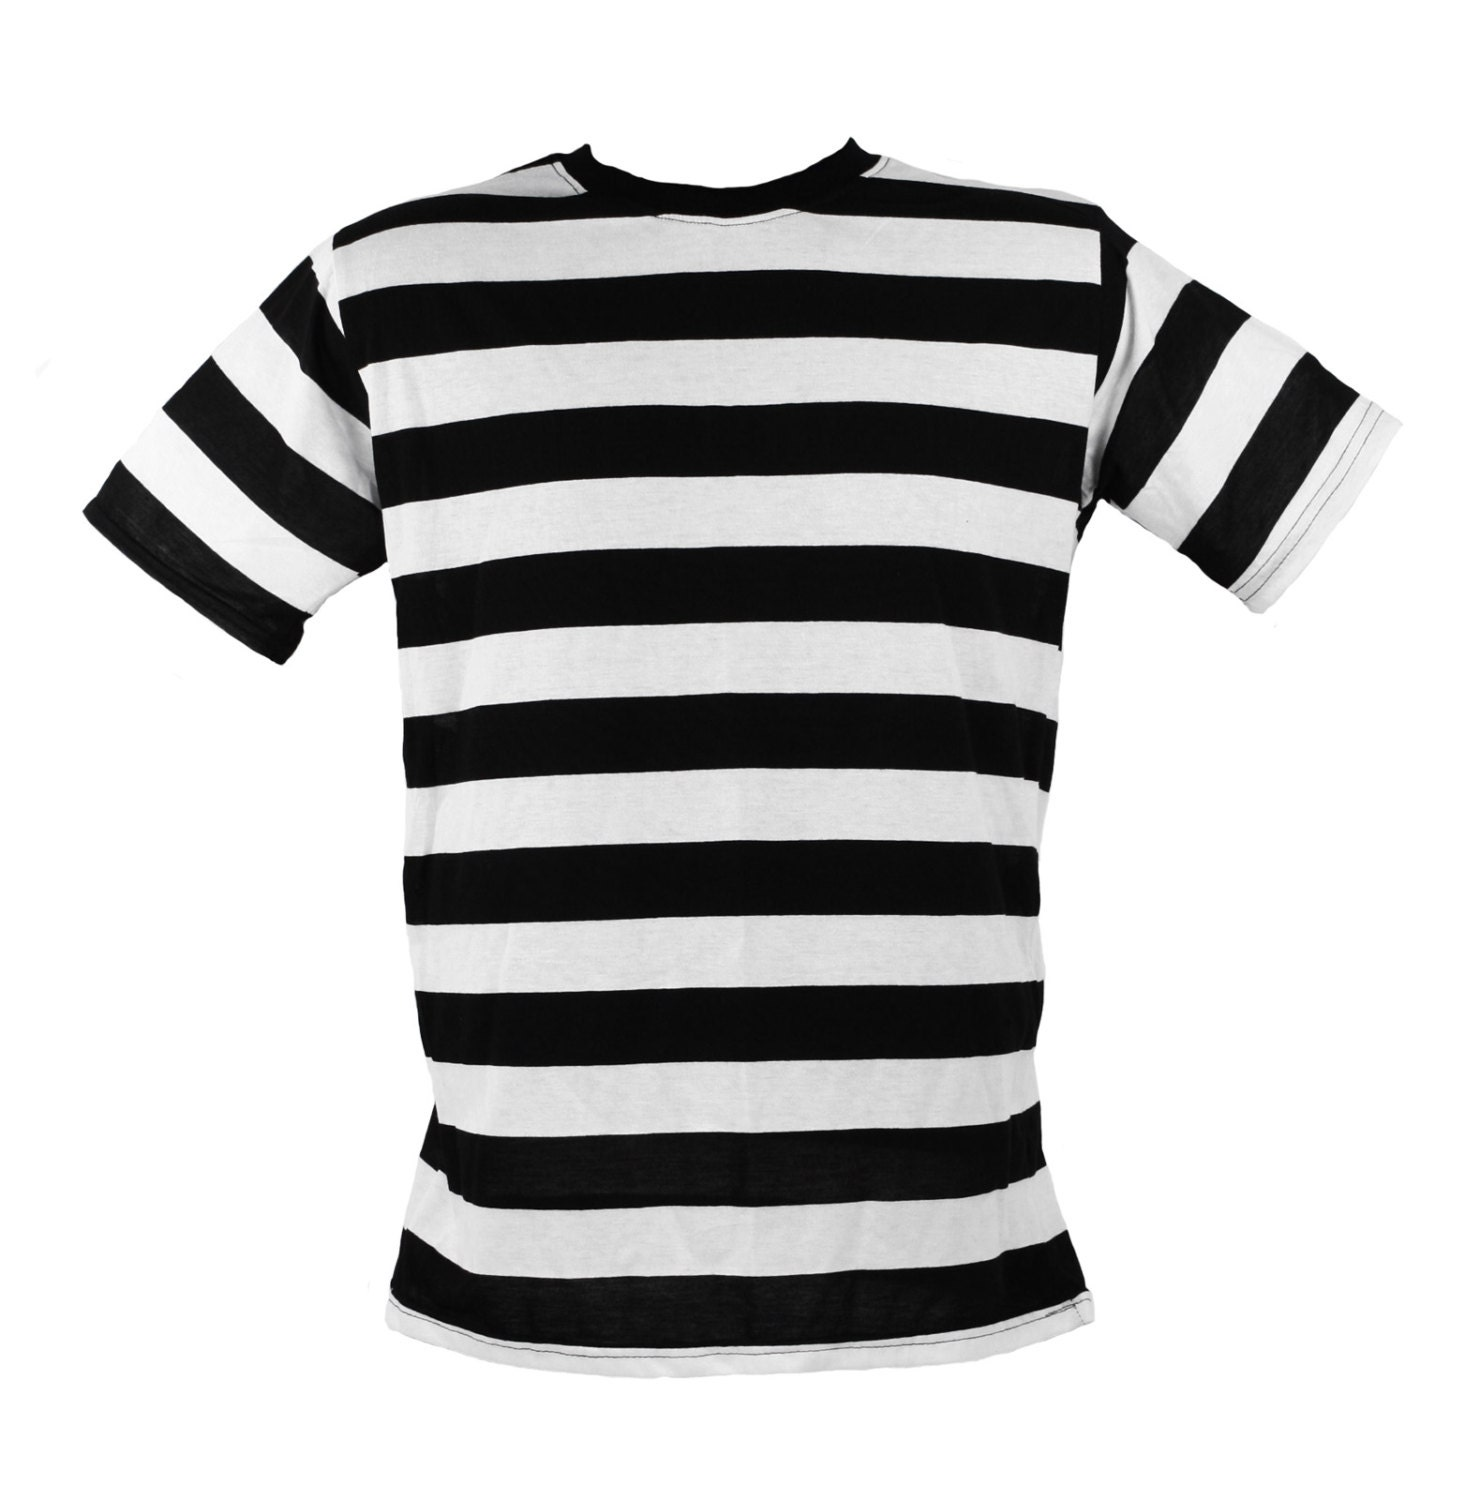 Make a bold statement with our Black White Striped T-Shirts, or choose from our wide variety of expressive graphic tees for any season, interest or occasion. Whether you want a sarcastic t-shirt or a geeky t-shirt to embrace your inner nerd, CafePress has the tee you're looking for. If you'd rather.